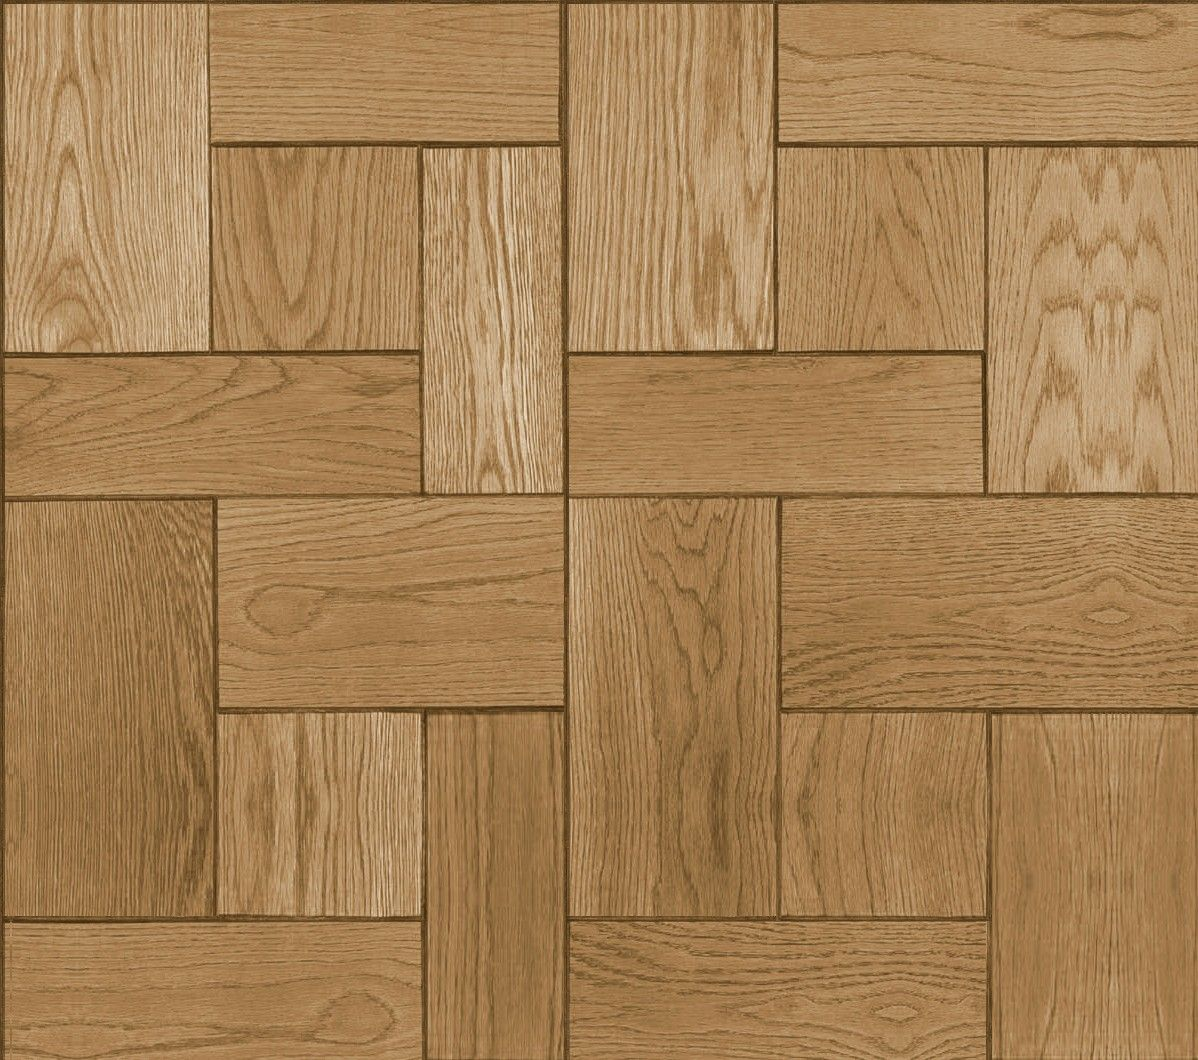 Reclaimed Wood Pattern For Sketchup | Wooden Thing